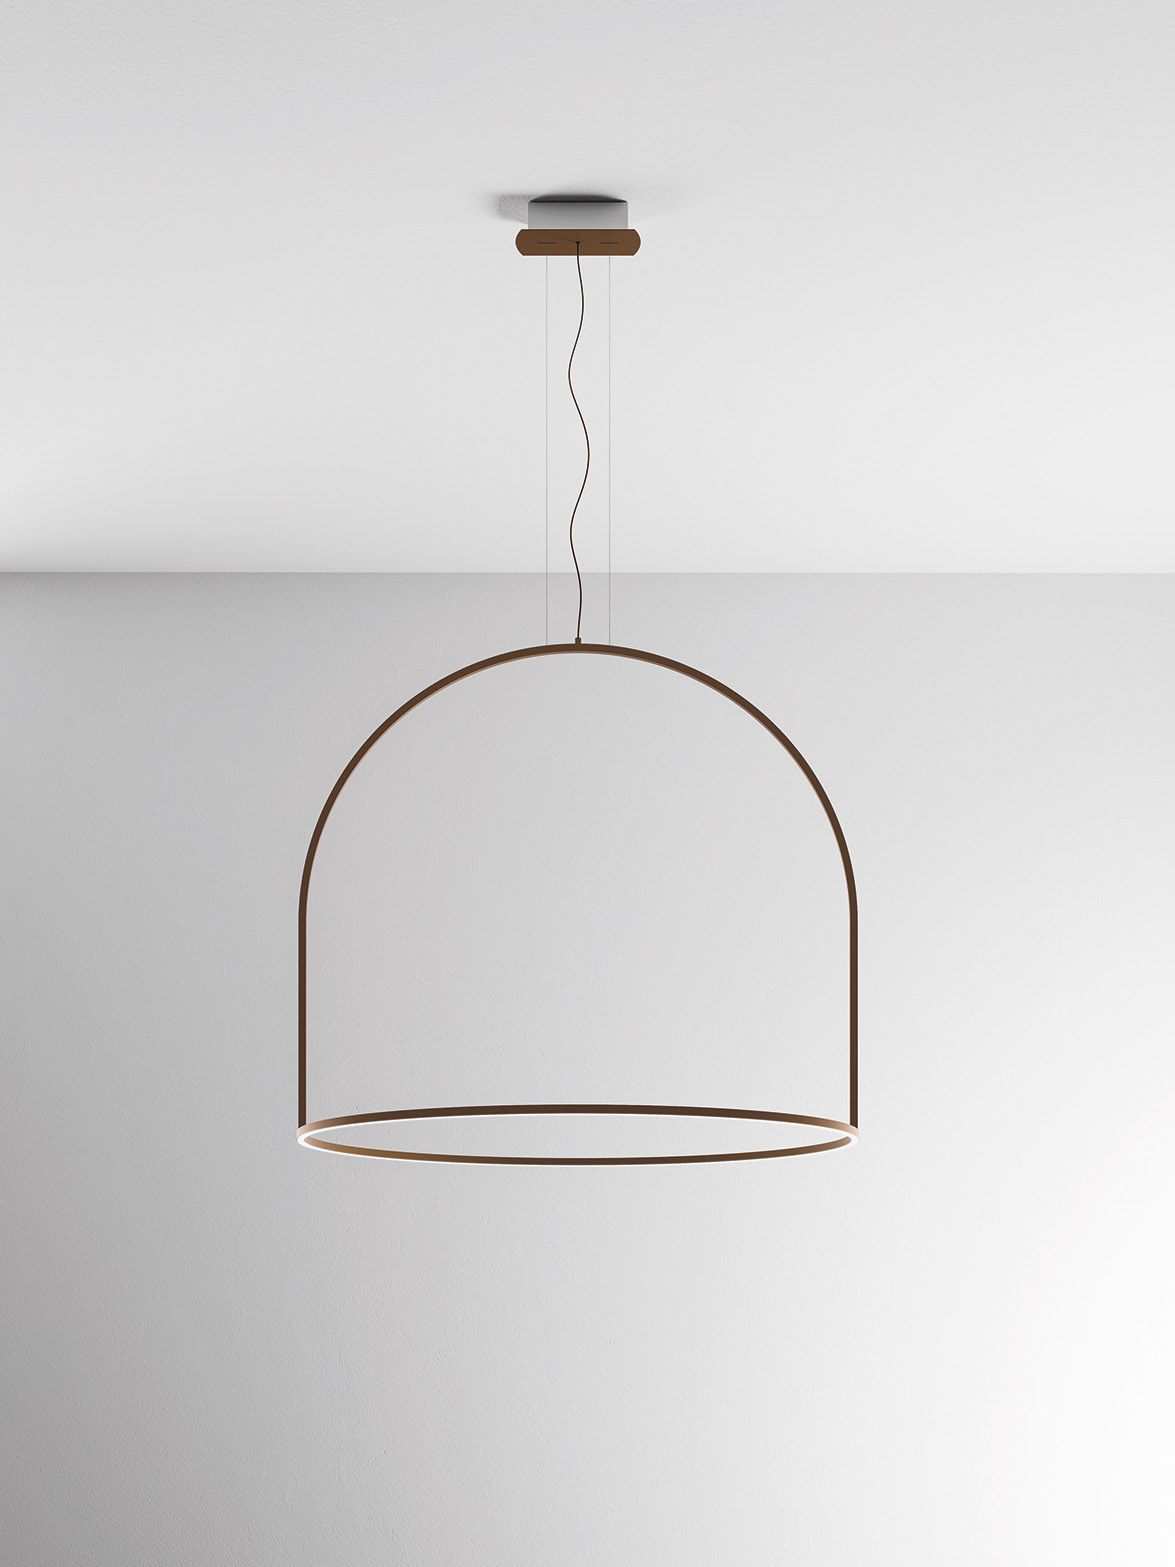 U Light By Timo Ripatti For Axo Light Rings Of Light In